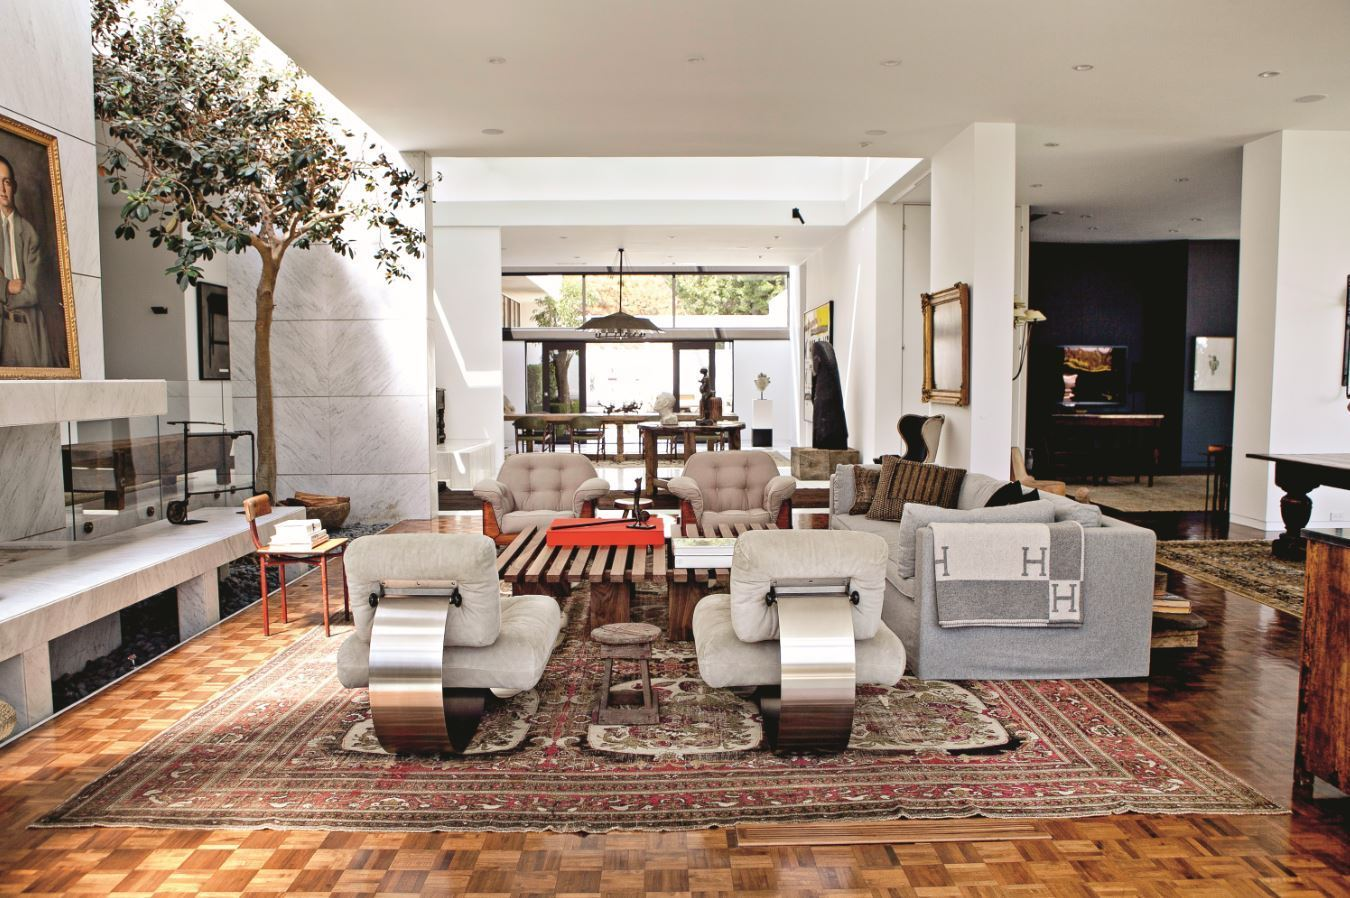 Ellen degeneres takes us inside her pretty houses in 39 home for Pretty homes inside